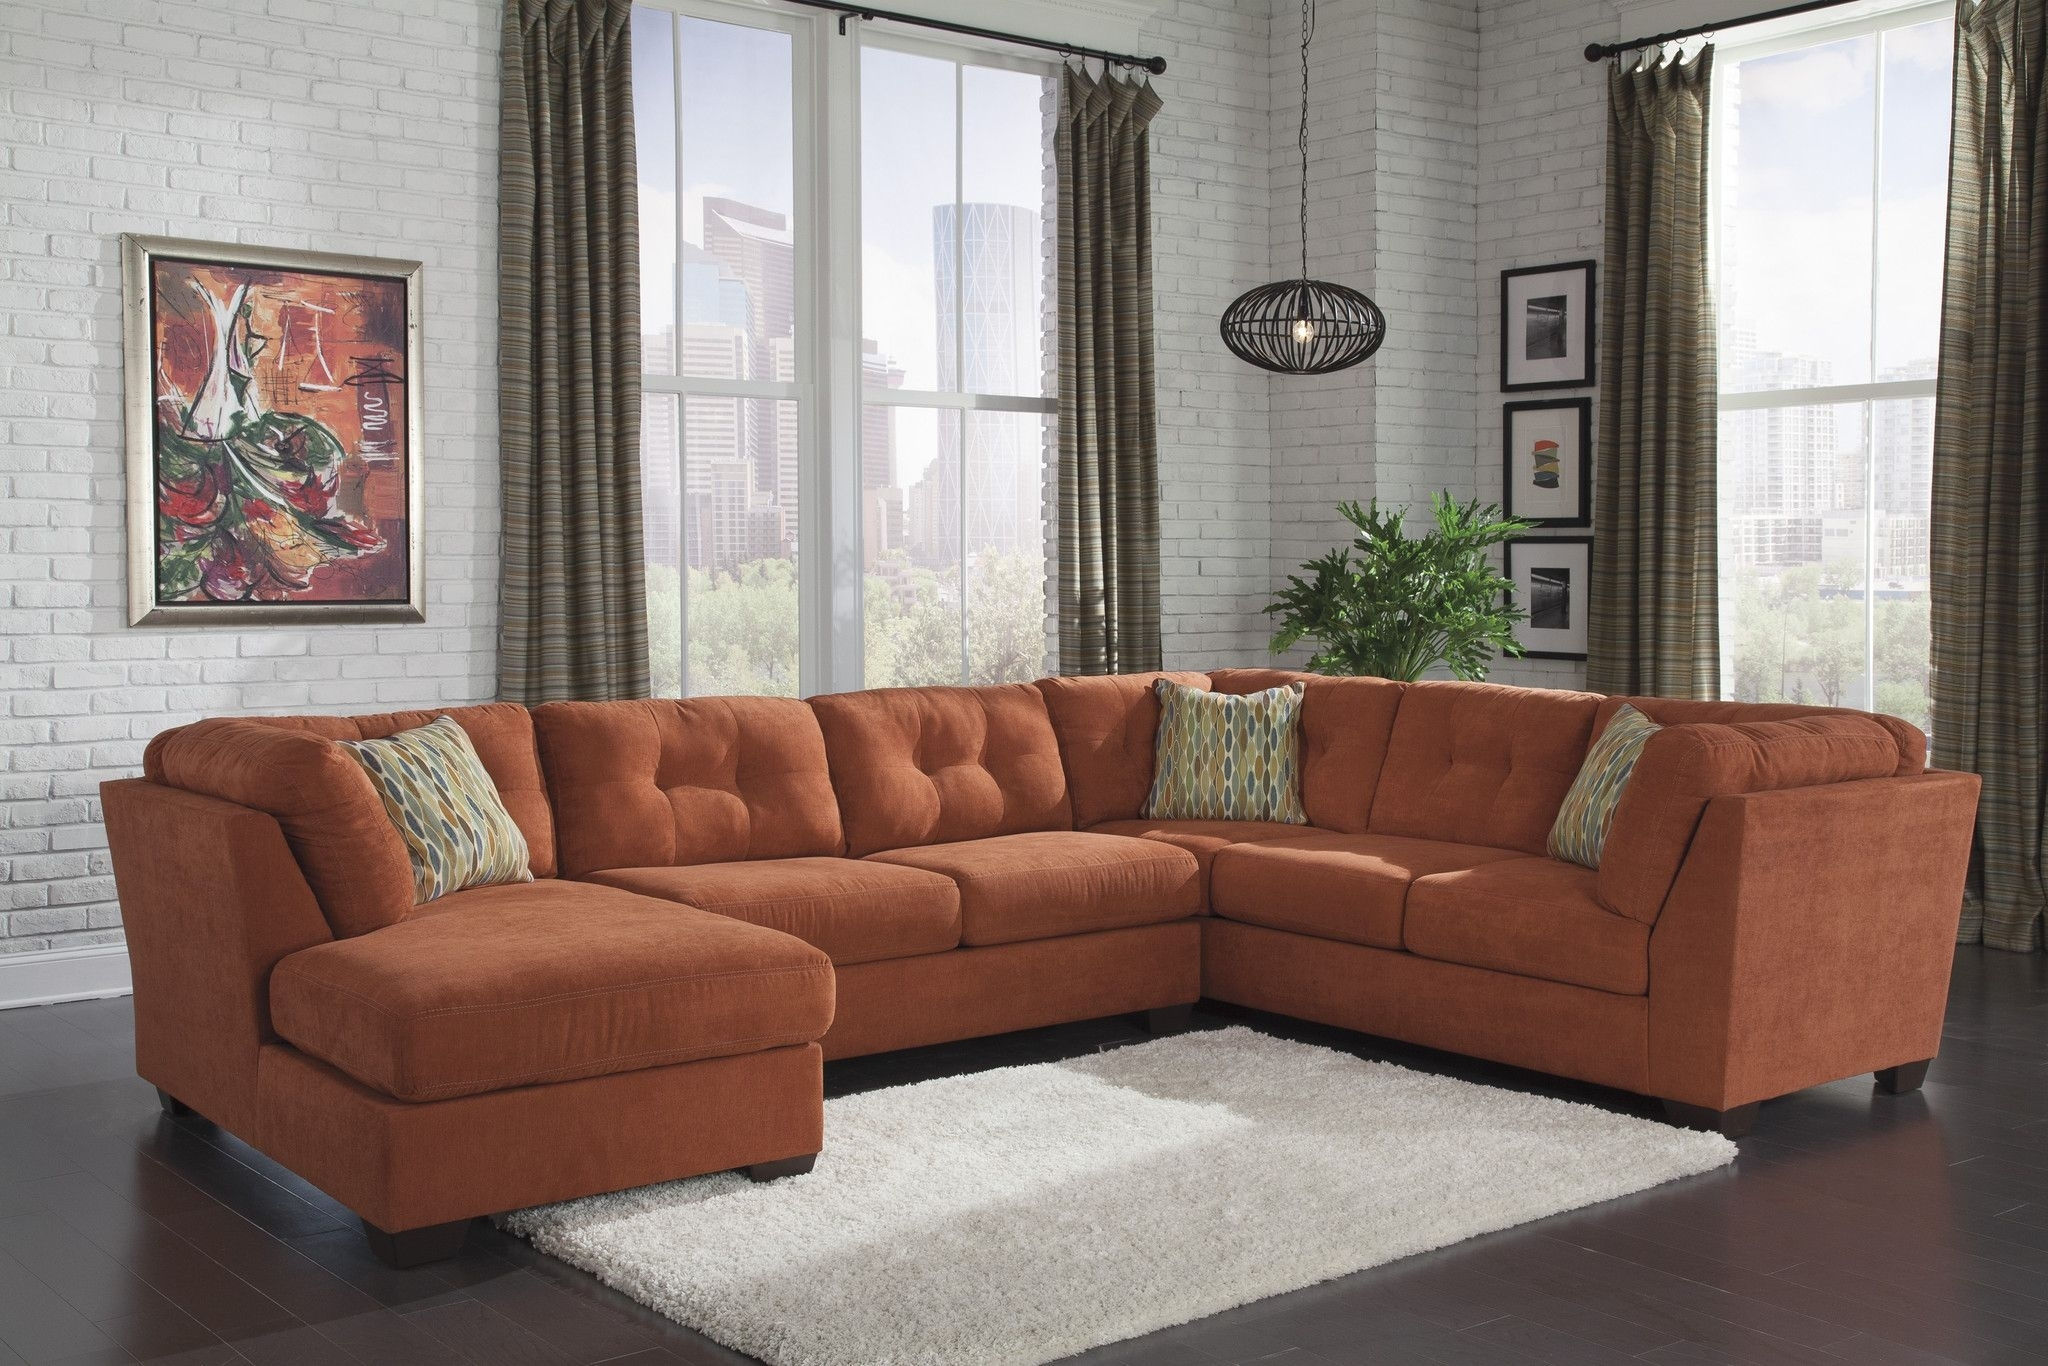 Ashley Furniture Delta City Orange Sectional Left 1970116+34+38 with Turdur 2 Piece Sectionals With Laf Loveseat (Image 3 of 30)